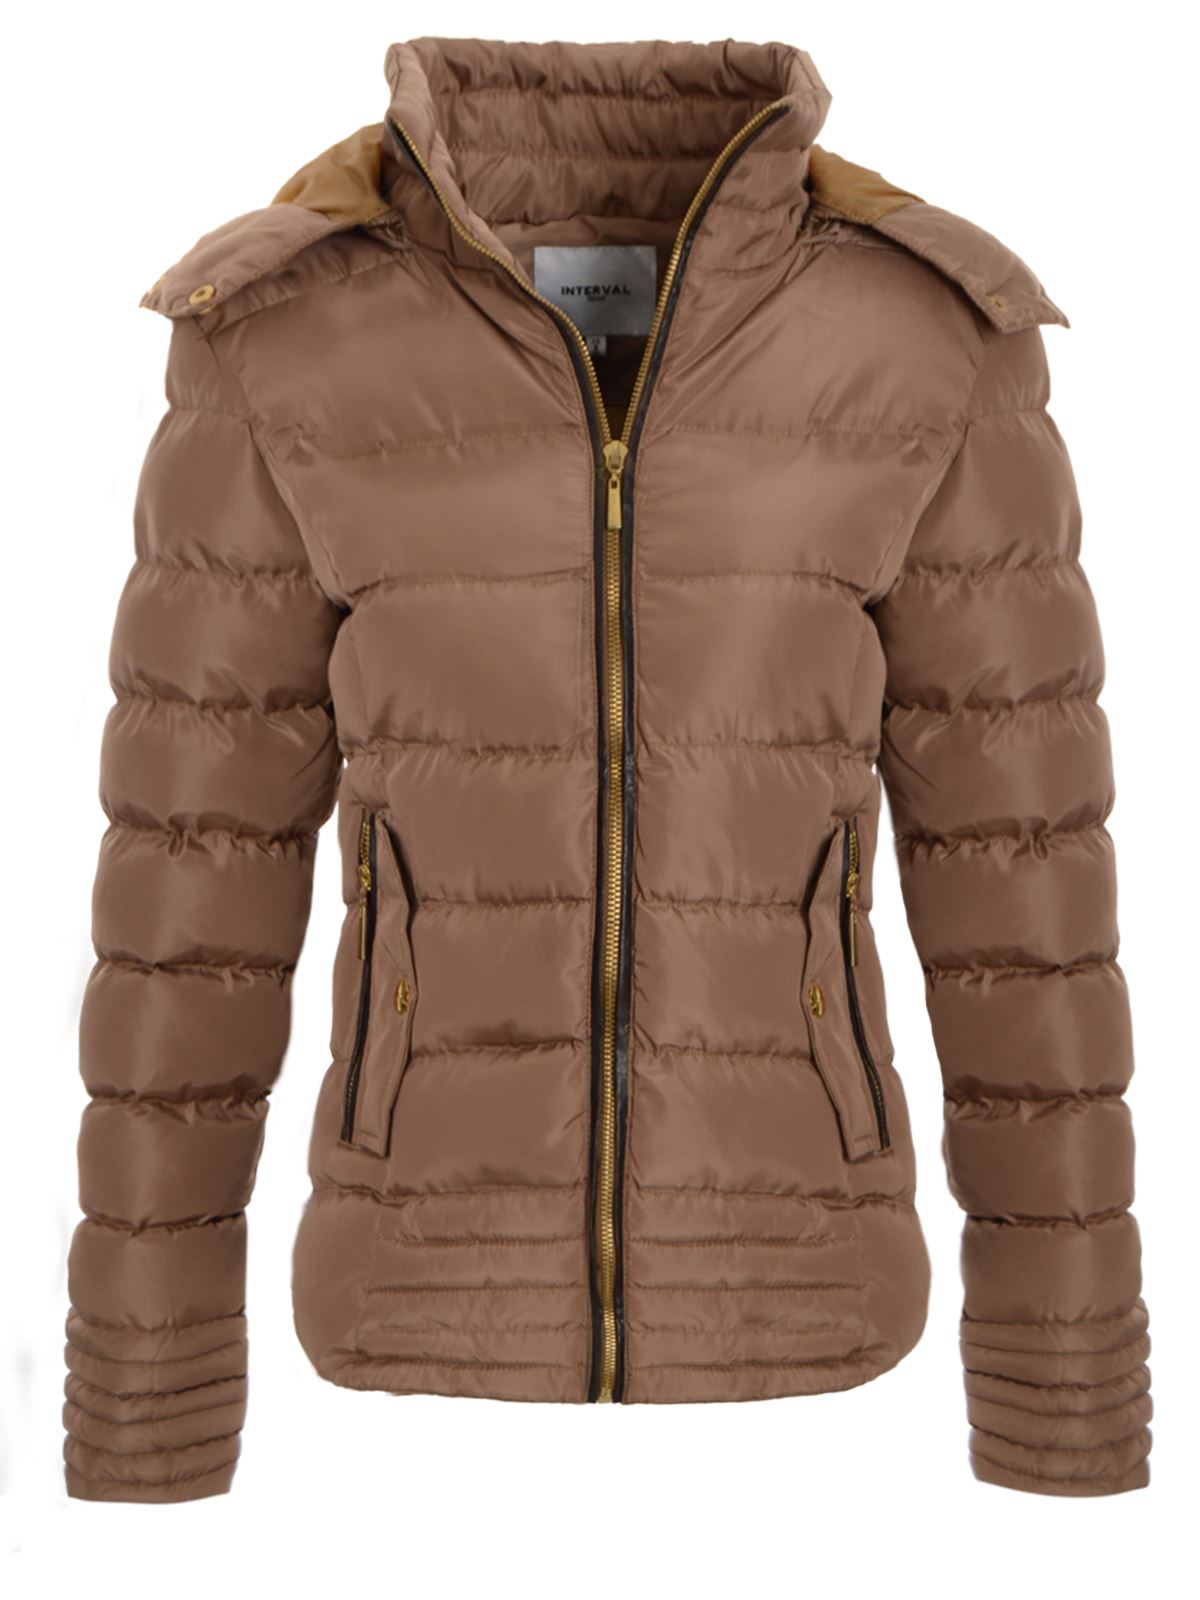 LADIES PADDED & QUILTED JACKETS. Items Per Page. Sort By Ladies biker jacket Womens faux fur coats & jackets Womens waterproof coat and jackets Women's coats and jackets Green Hooded Padded Jacket. £ Pink Padded Jacket. £ Navy Pack Away Down Jacket. £ Navy Short Padded Jacket. £ Green Animal Padded Jacket. £ Silver Pack.